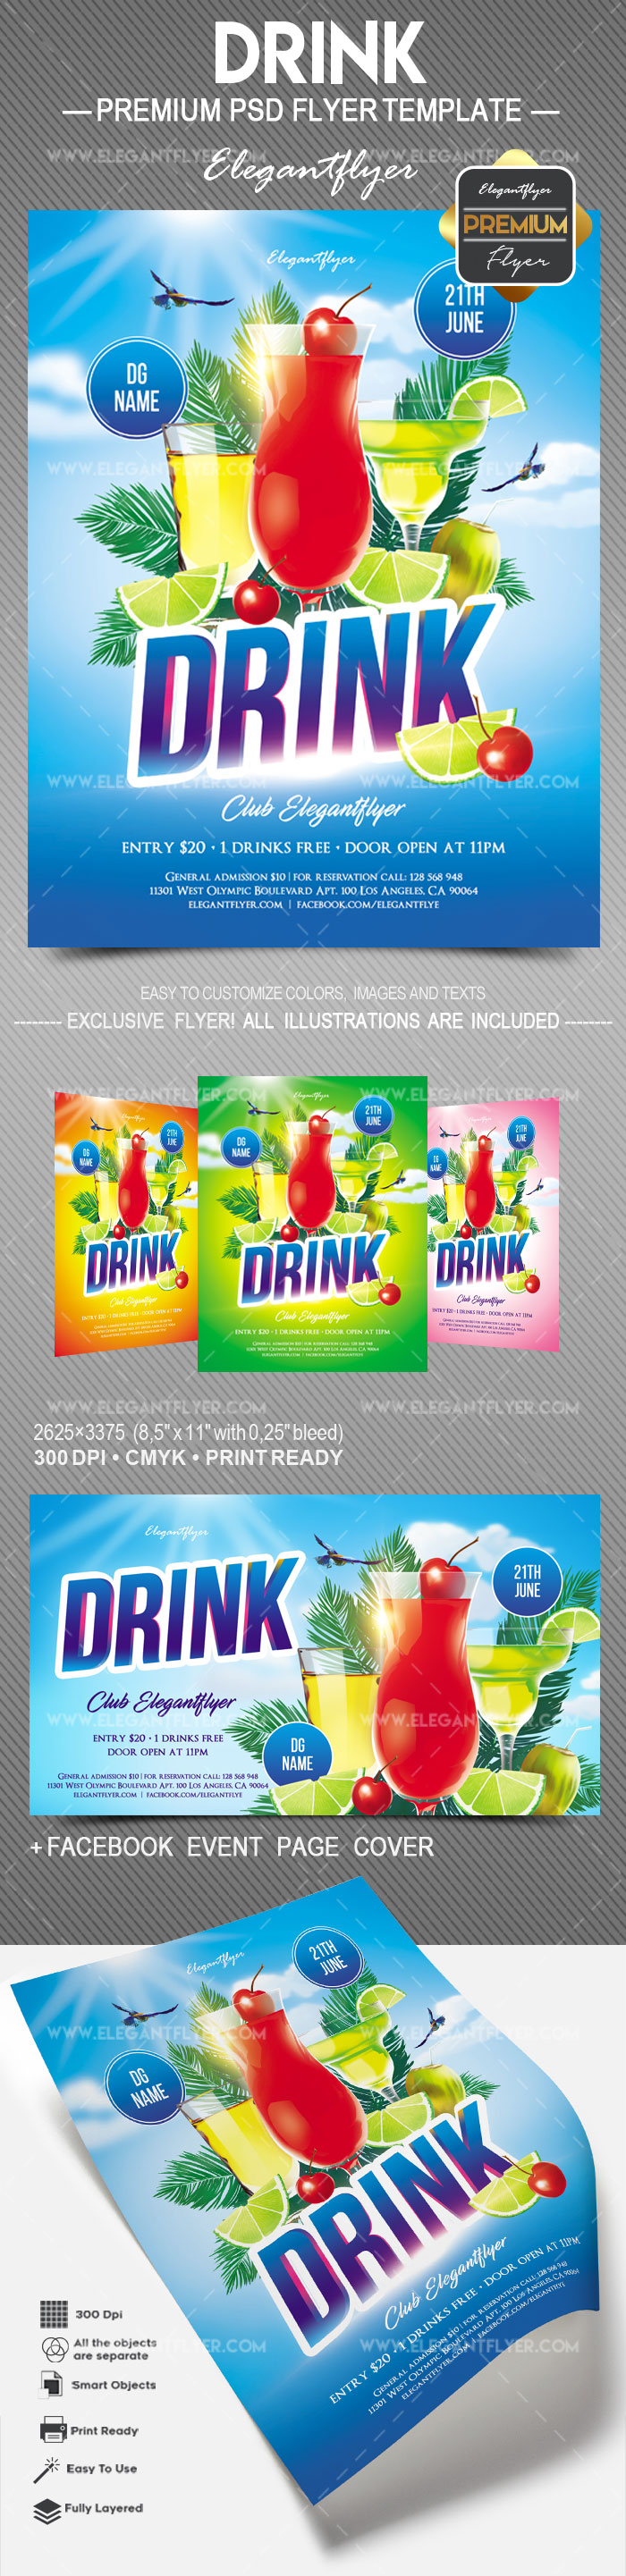 Drink – Free Flyer PSD Template